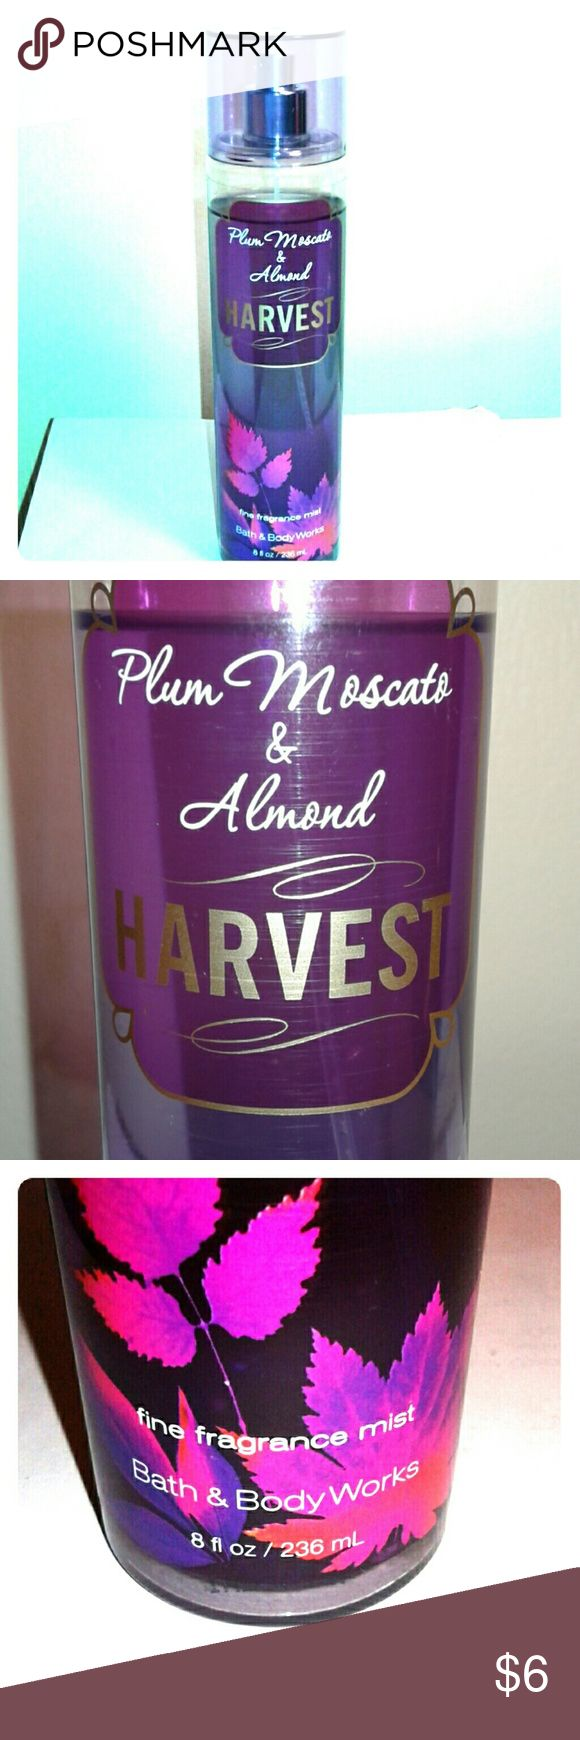 Bath & Body Works Plum Moscato & Almond Harvest Body mist with hints of plum moscato, toasted almonds, blackcurrant, Lily blossom, and vanilla. Great for all seasons! Only used a few times. Take a look at the rest of my closet and save! Bath & Body Works Other